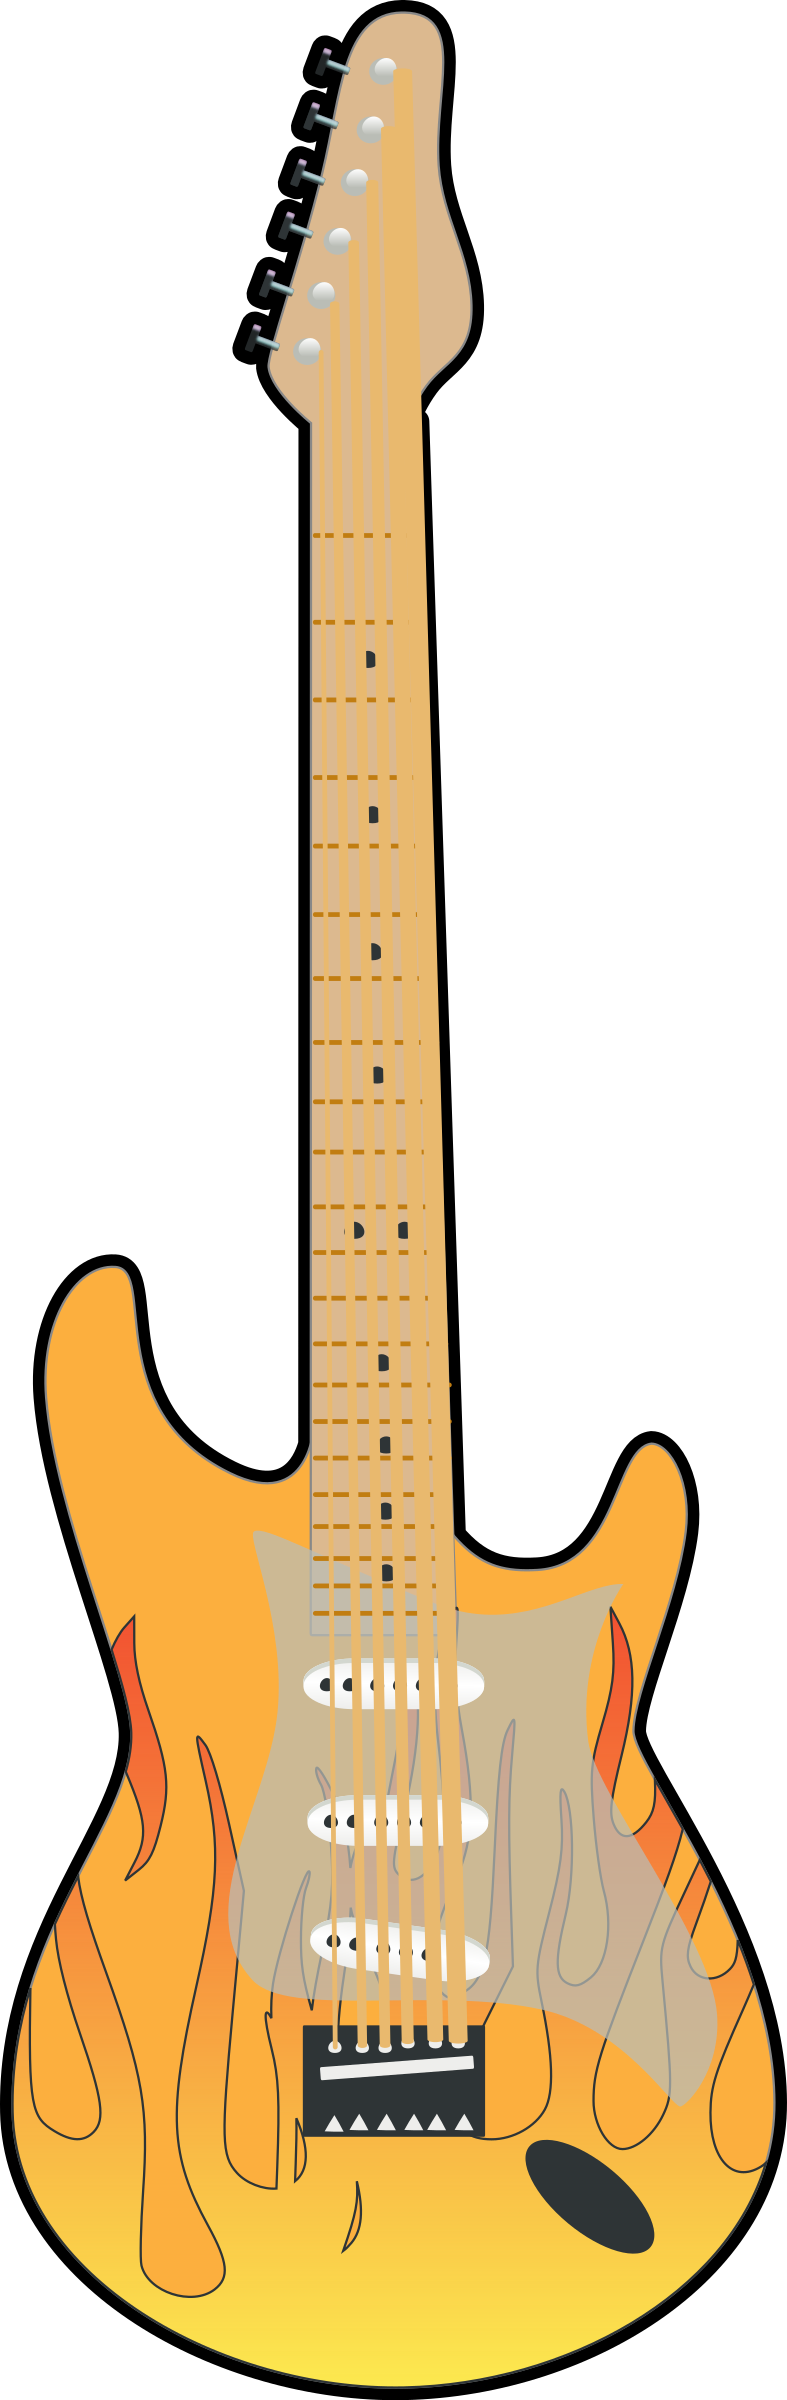 Guitar by hextrust